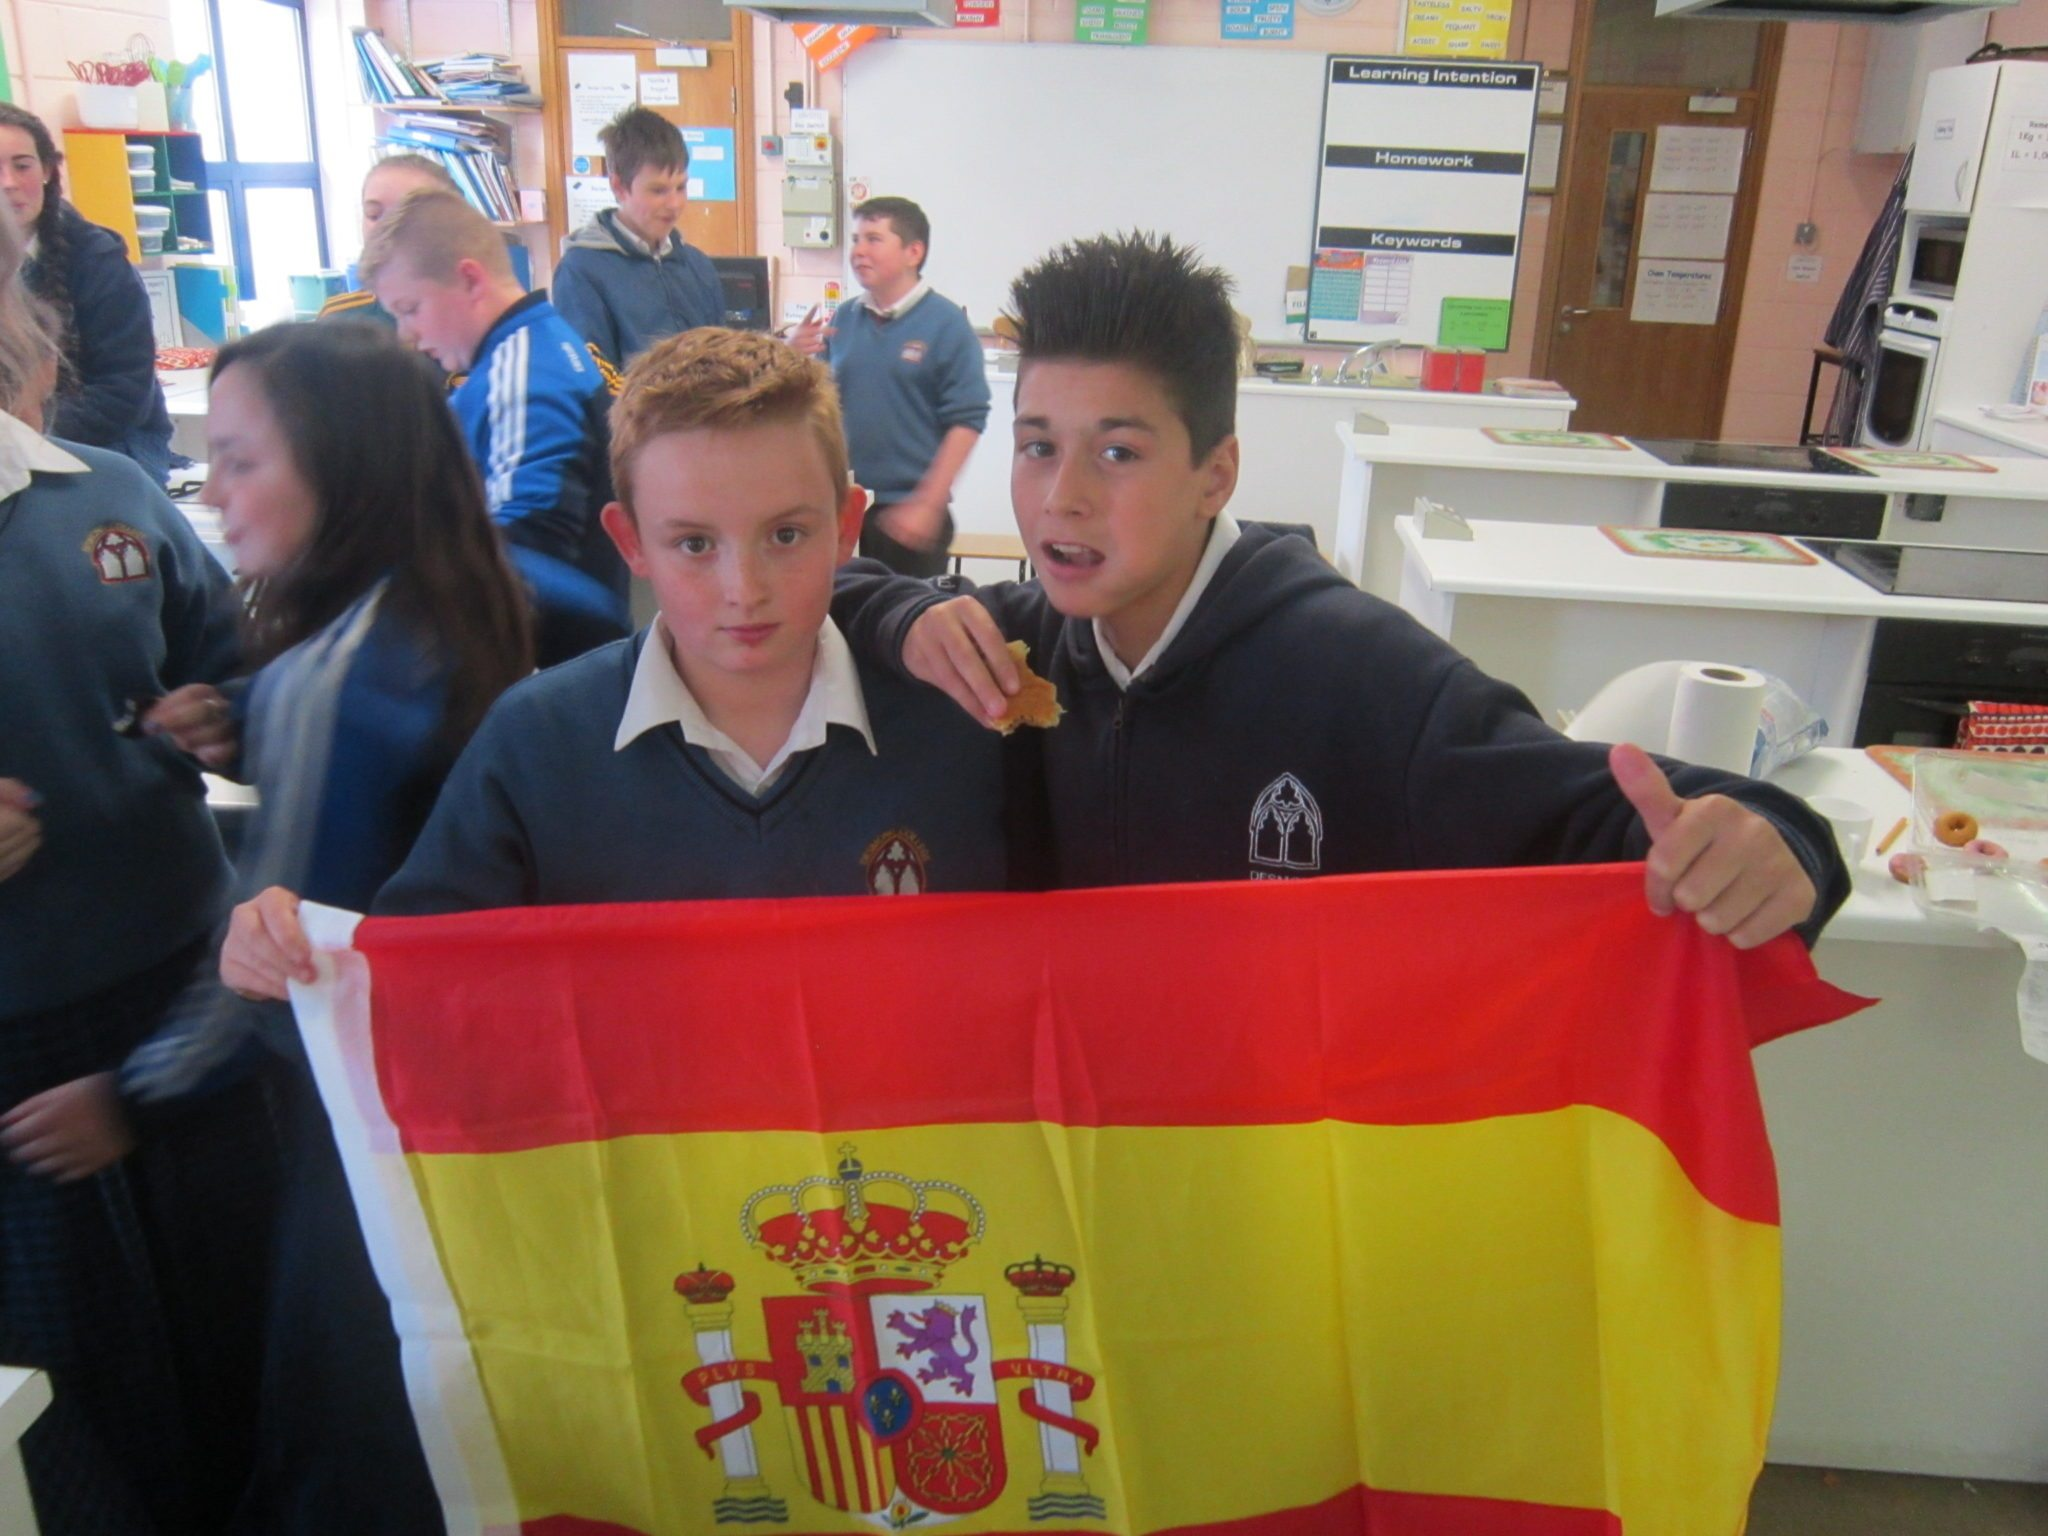 Desmond College Students AJ Donovan and Konrad Papierowski are part of the Desmond College first year students who are learning about Spanish Culture